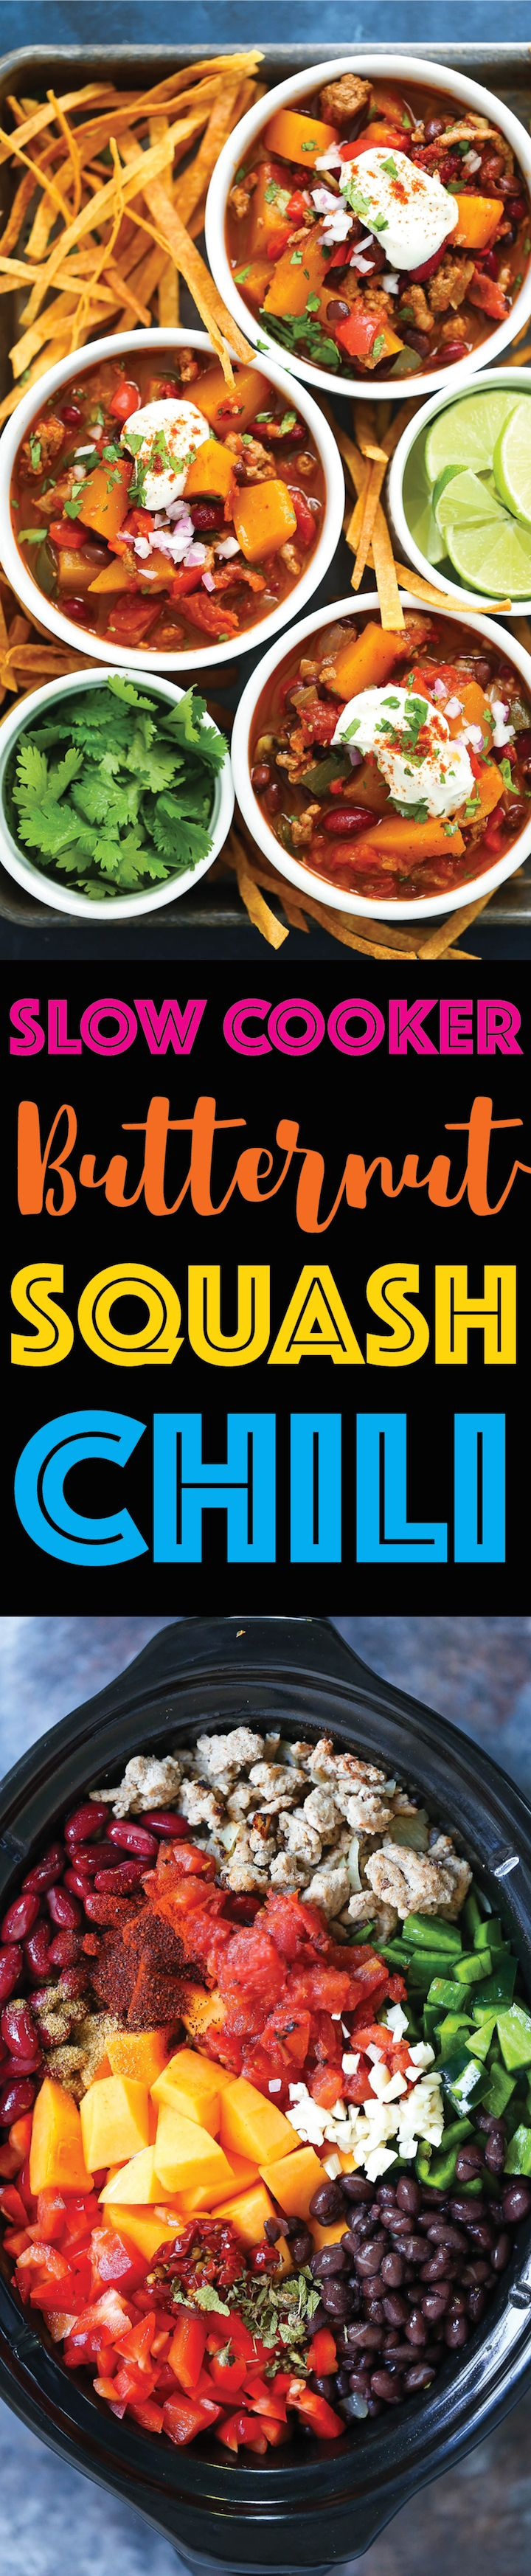 Slow Cooker Butternut Squash Chili - Just 20 min prep! Then you can come home to a cozy, hearty, comforting butternut squash turkey chili in the crockpot!